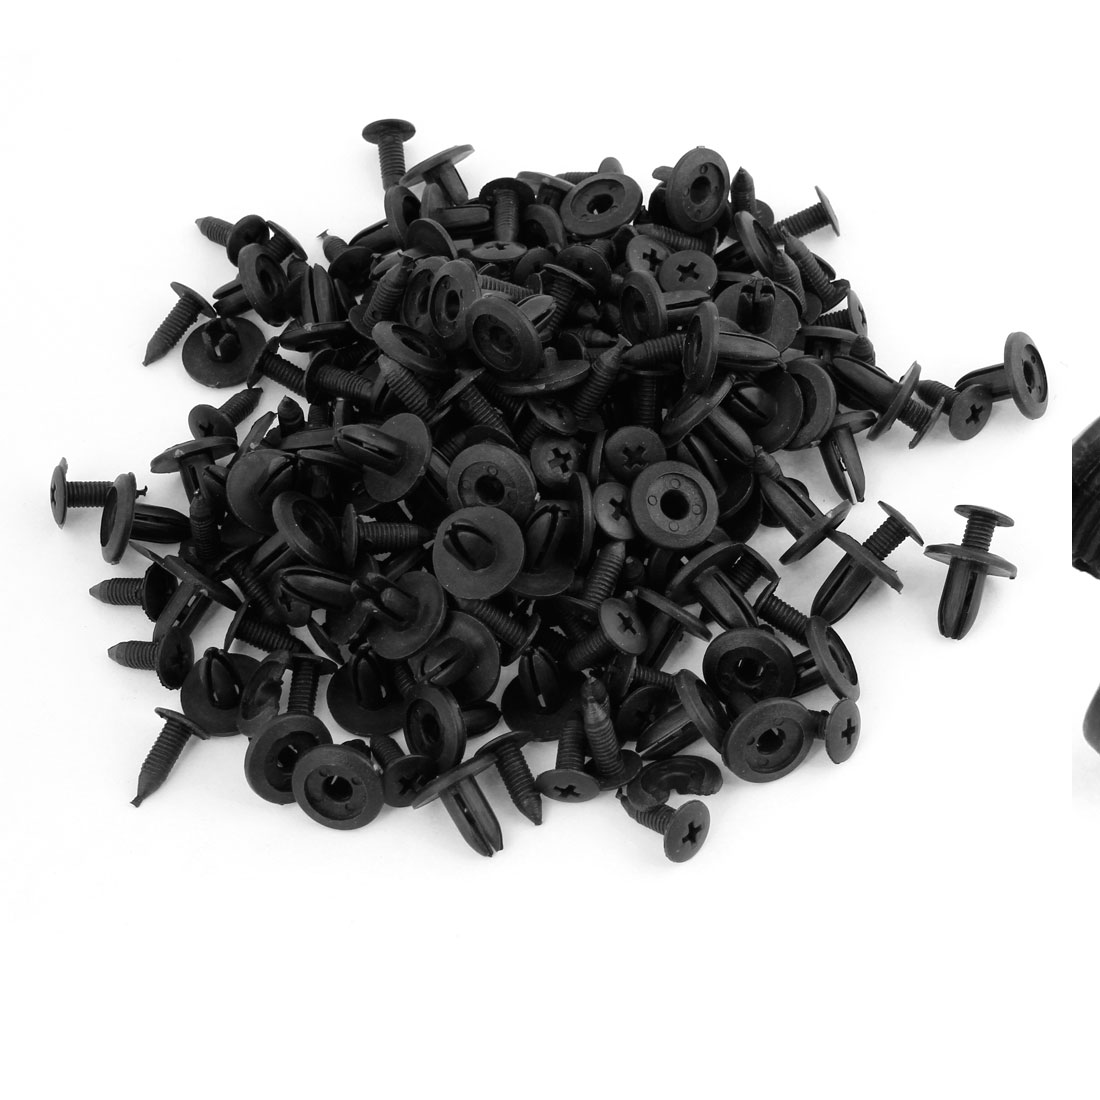 100PCS Plastic Rivets Car Vehicle Door Trim Panel Retainer Clips 20mm Long